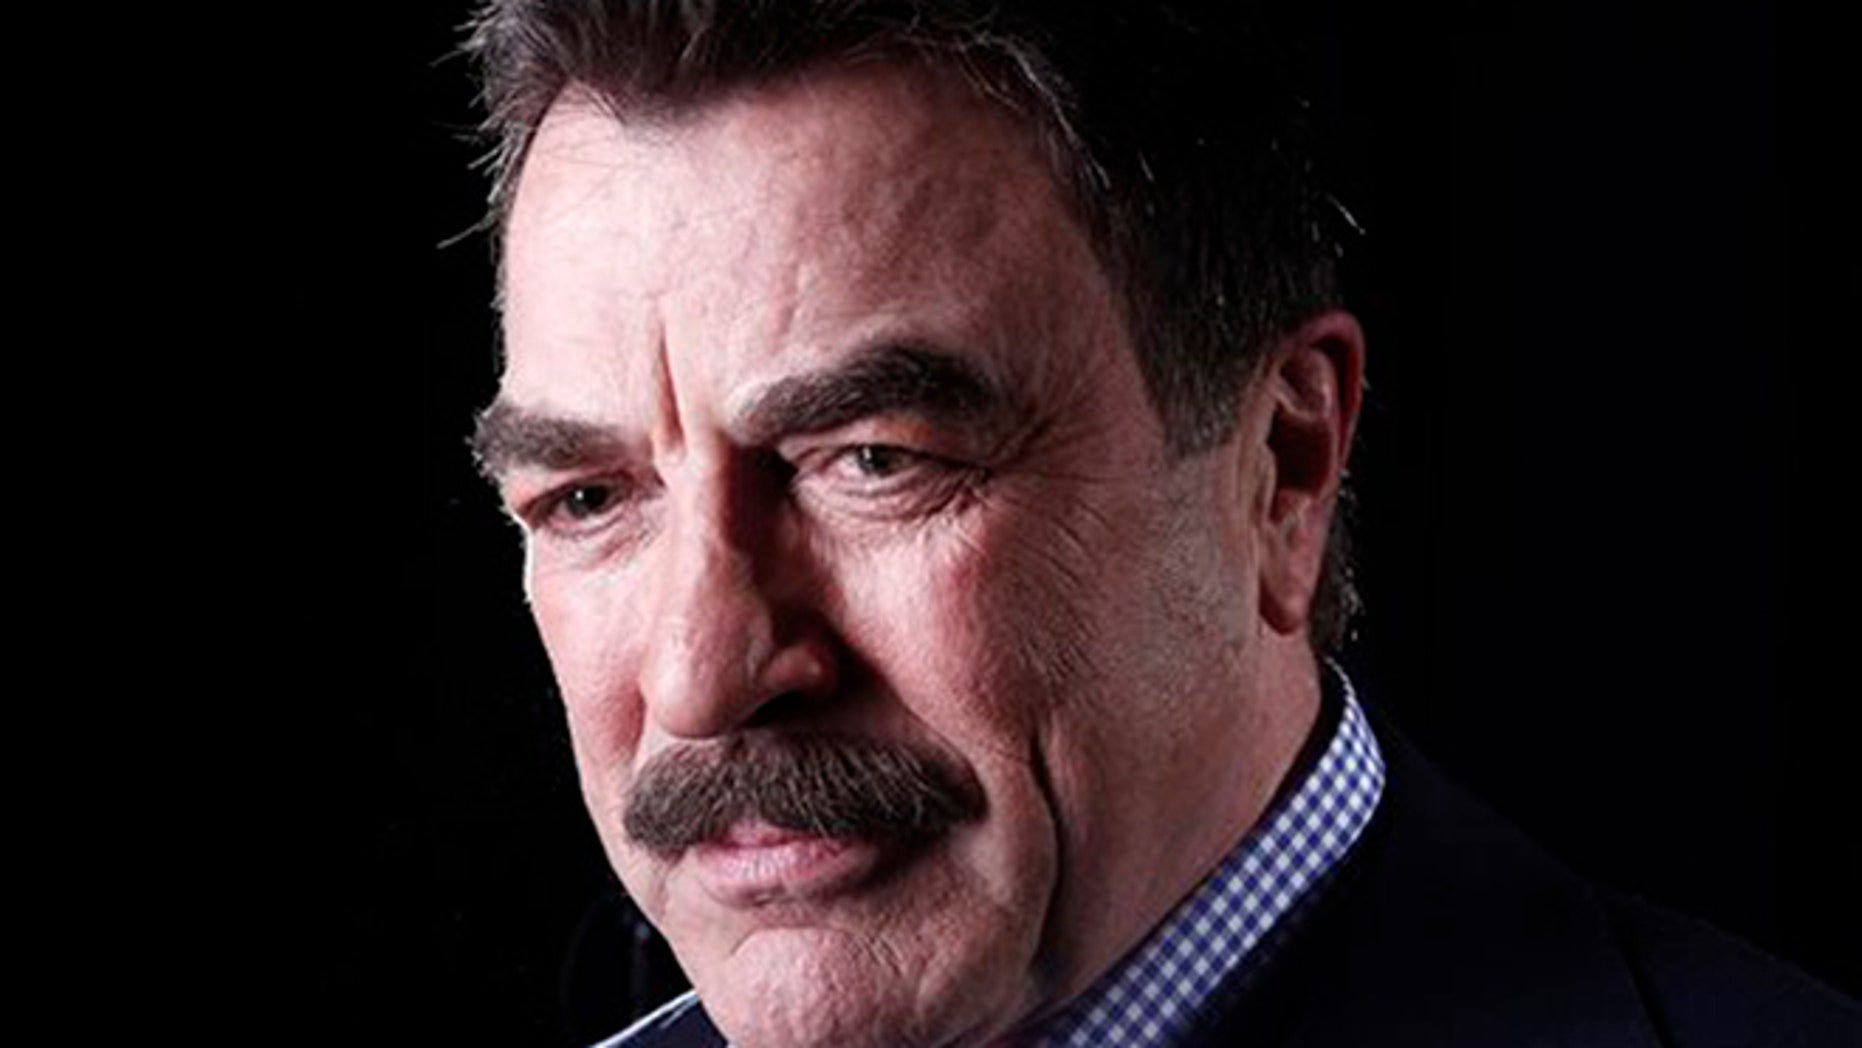 This file photo shows Actor Tom Selleck posing for a portrait in New York.  (AP Photo/Carlo Allegri, File)